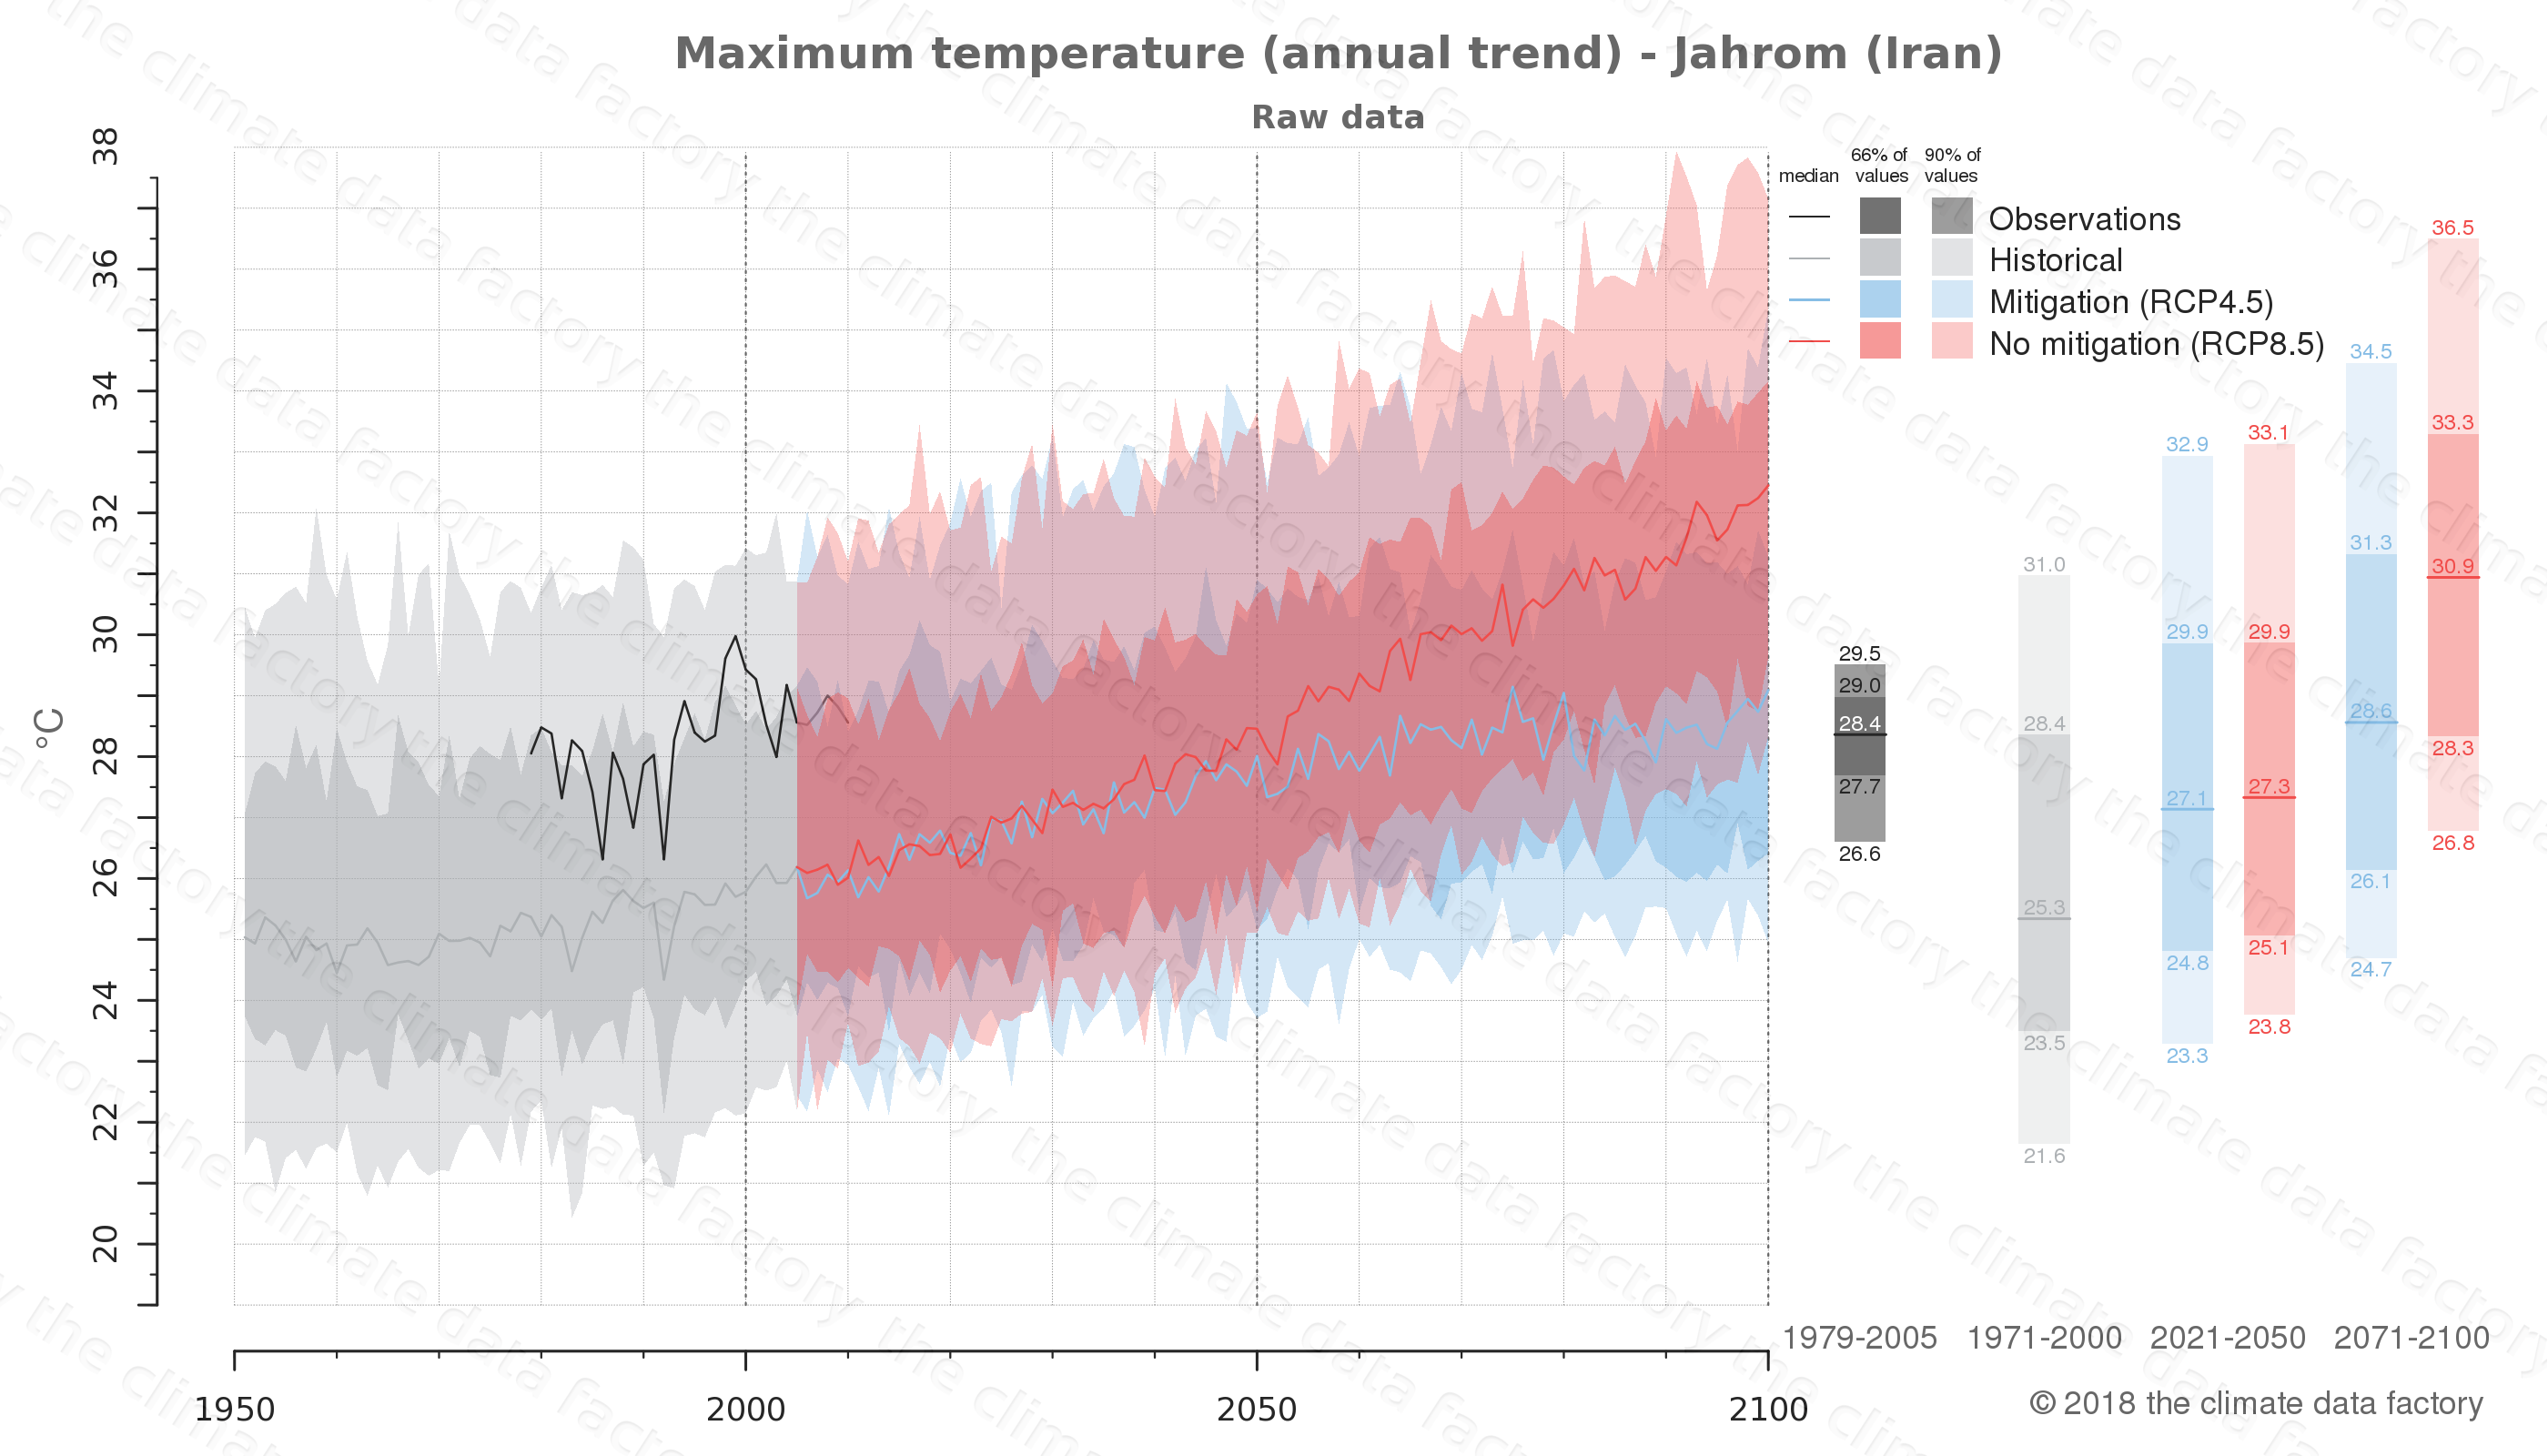 climate change data policy adaptation climate graph city data maximum-temperature jahrom iran